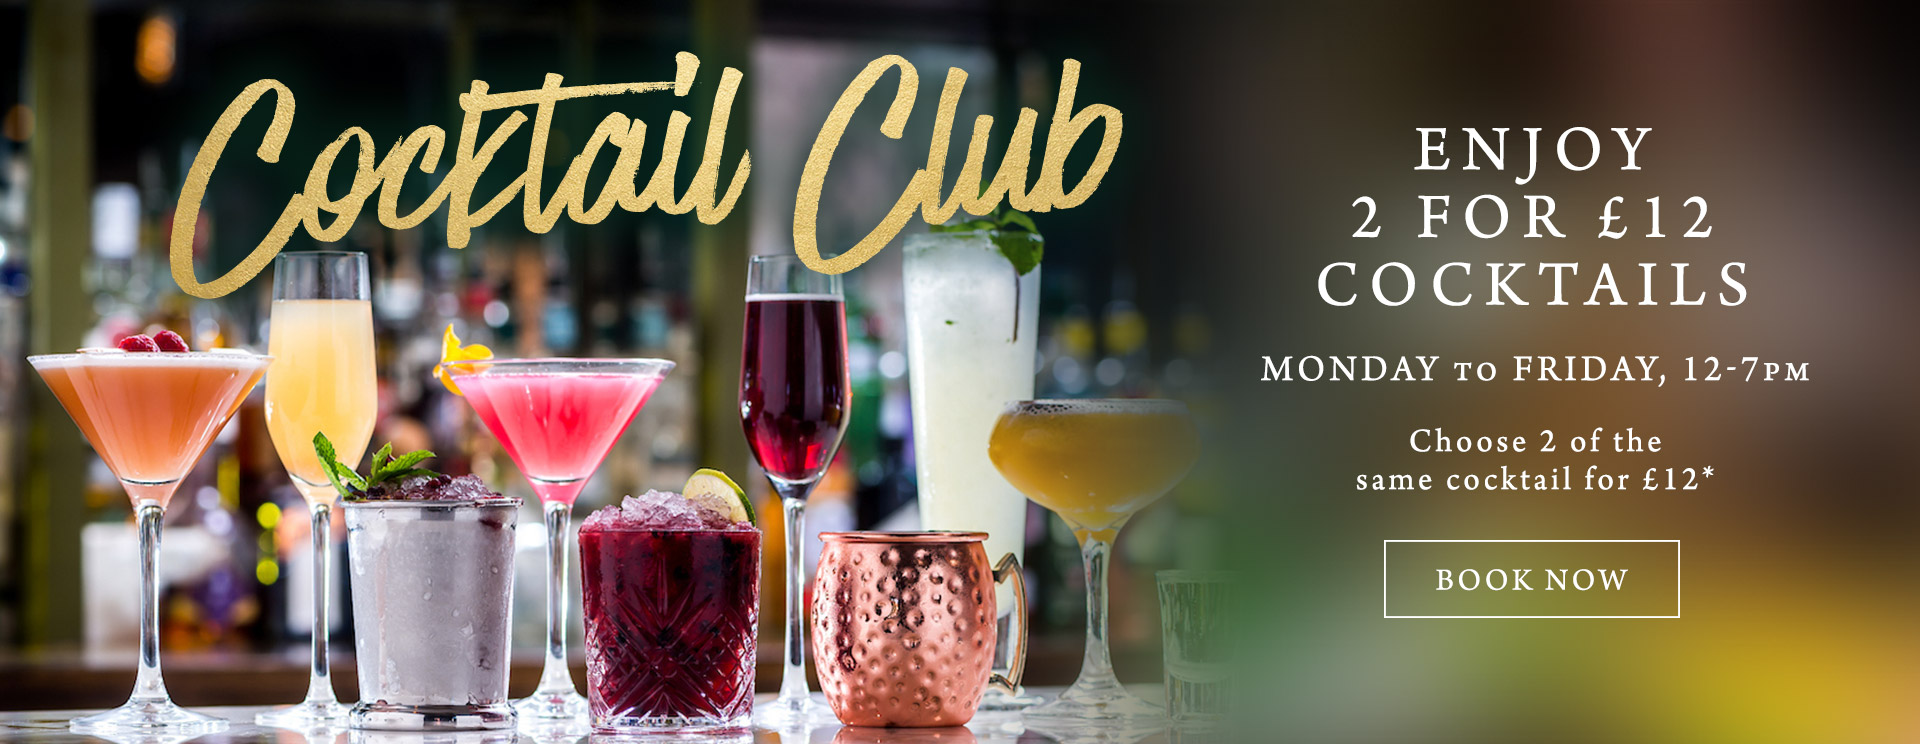 2 for £12 cocktails at The Orange Tree